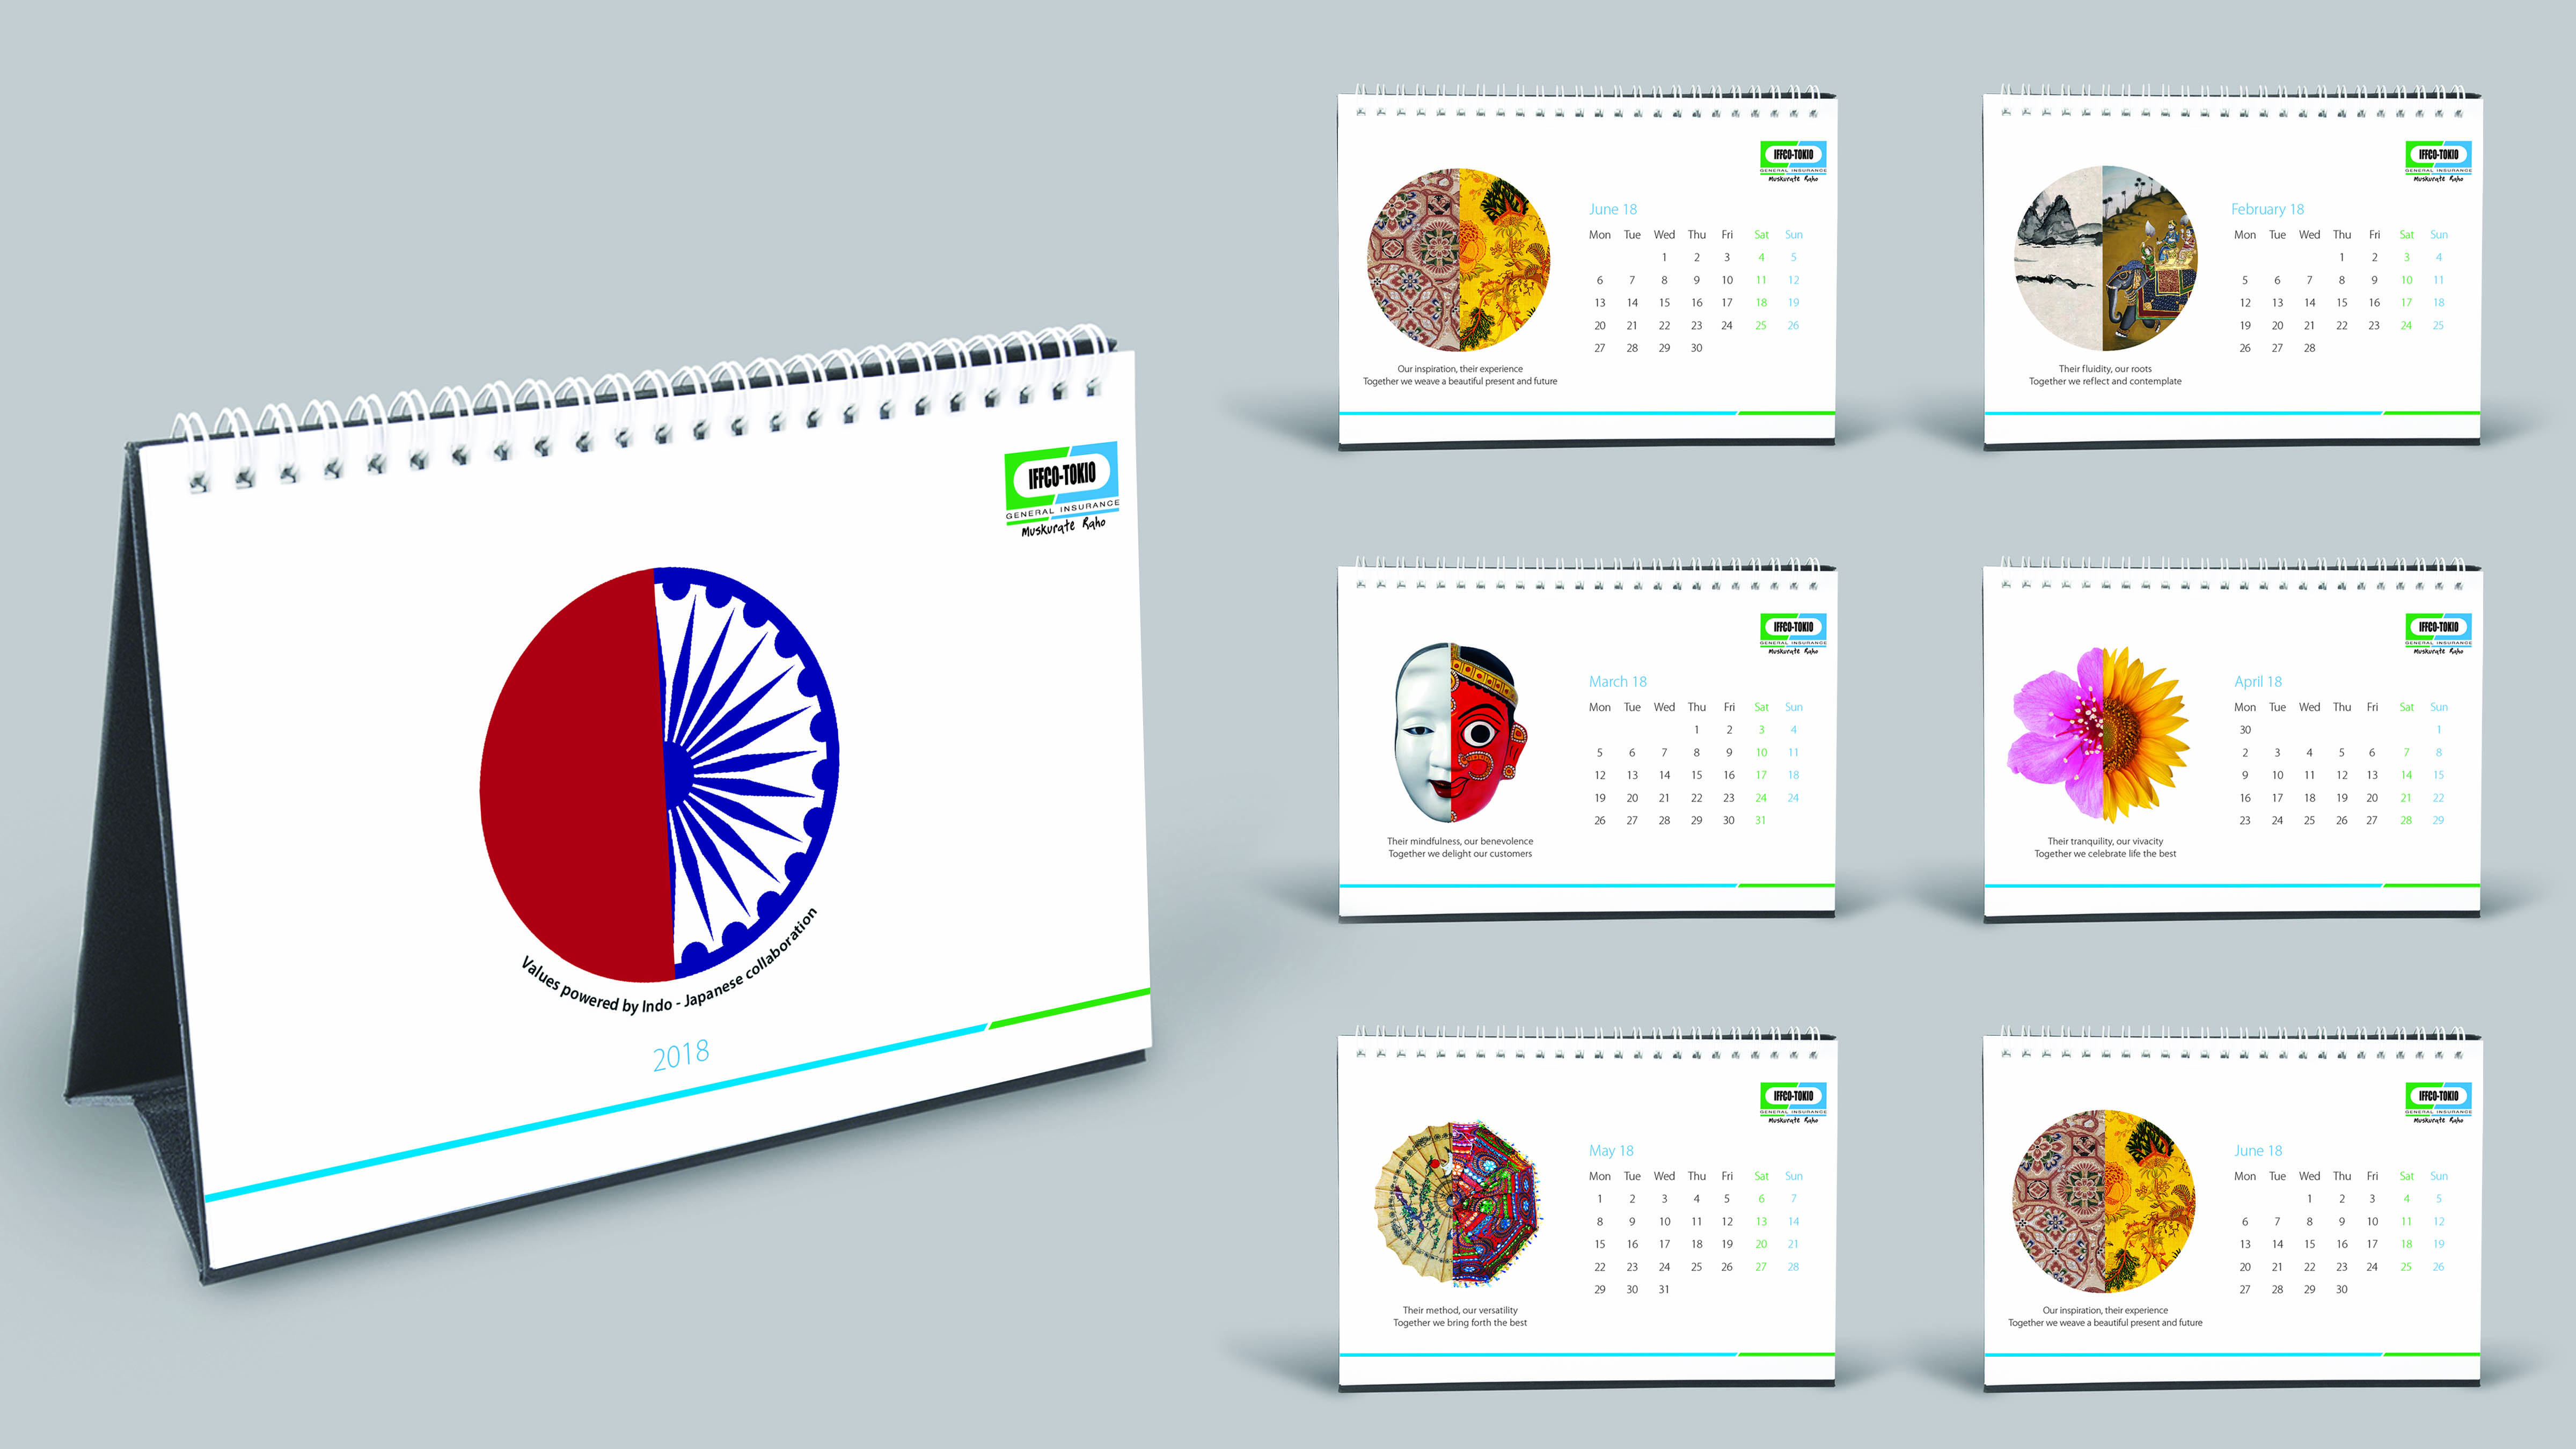 Iffco insurance calender design